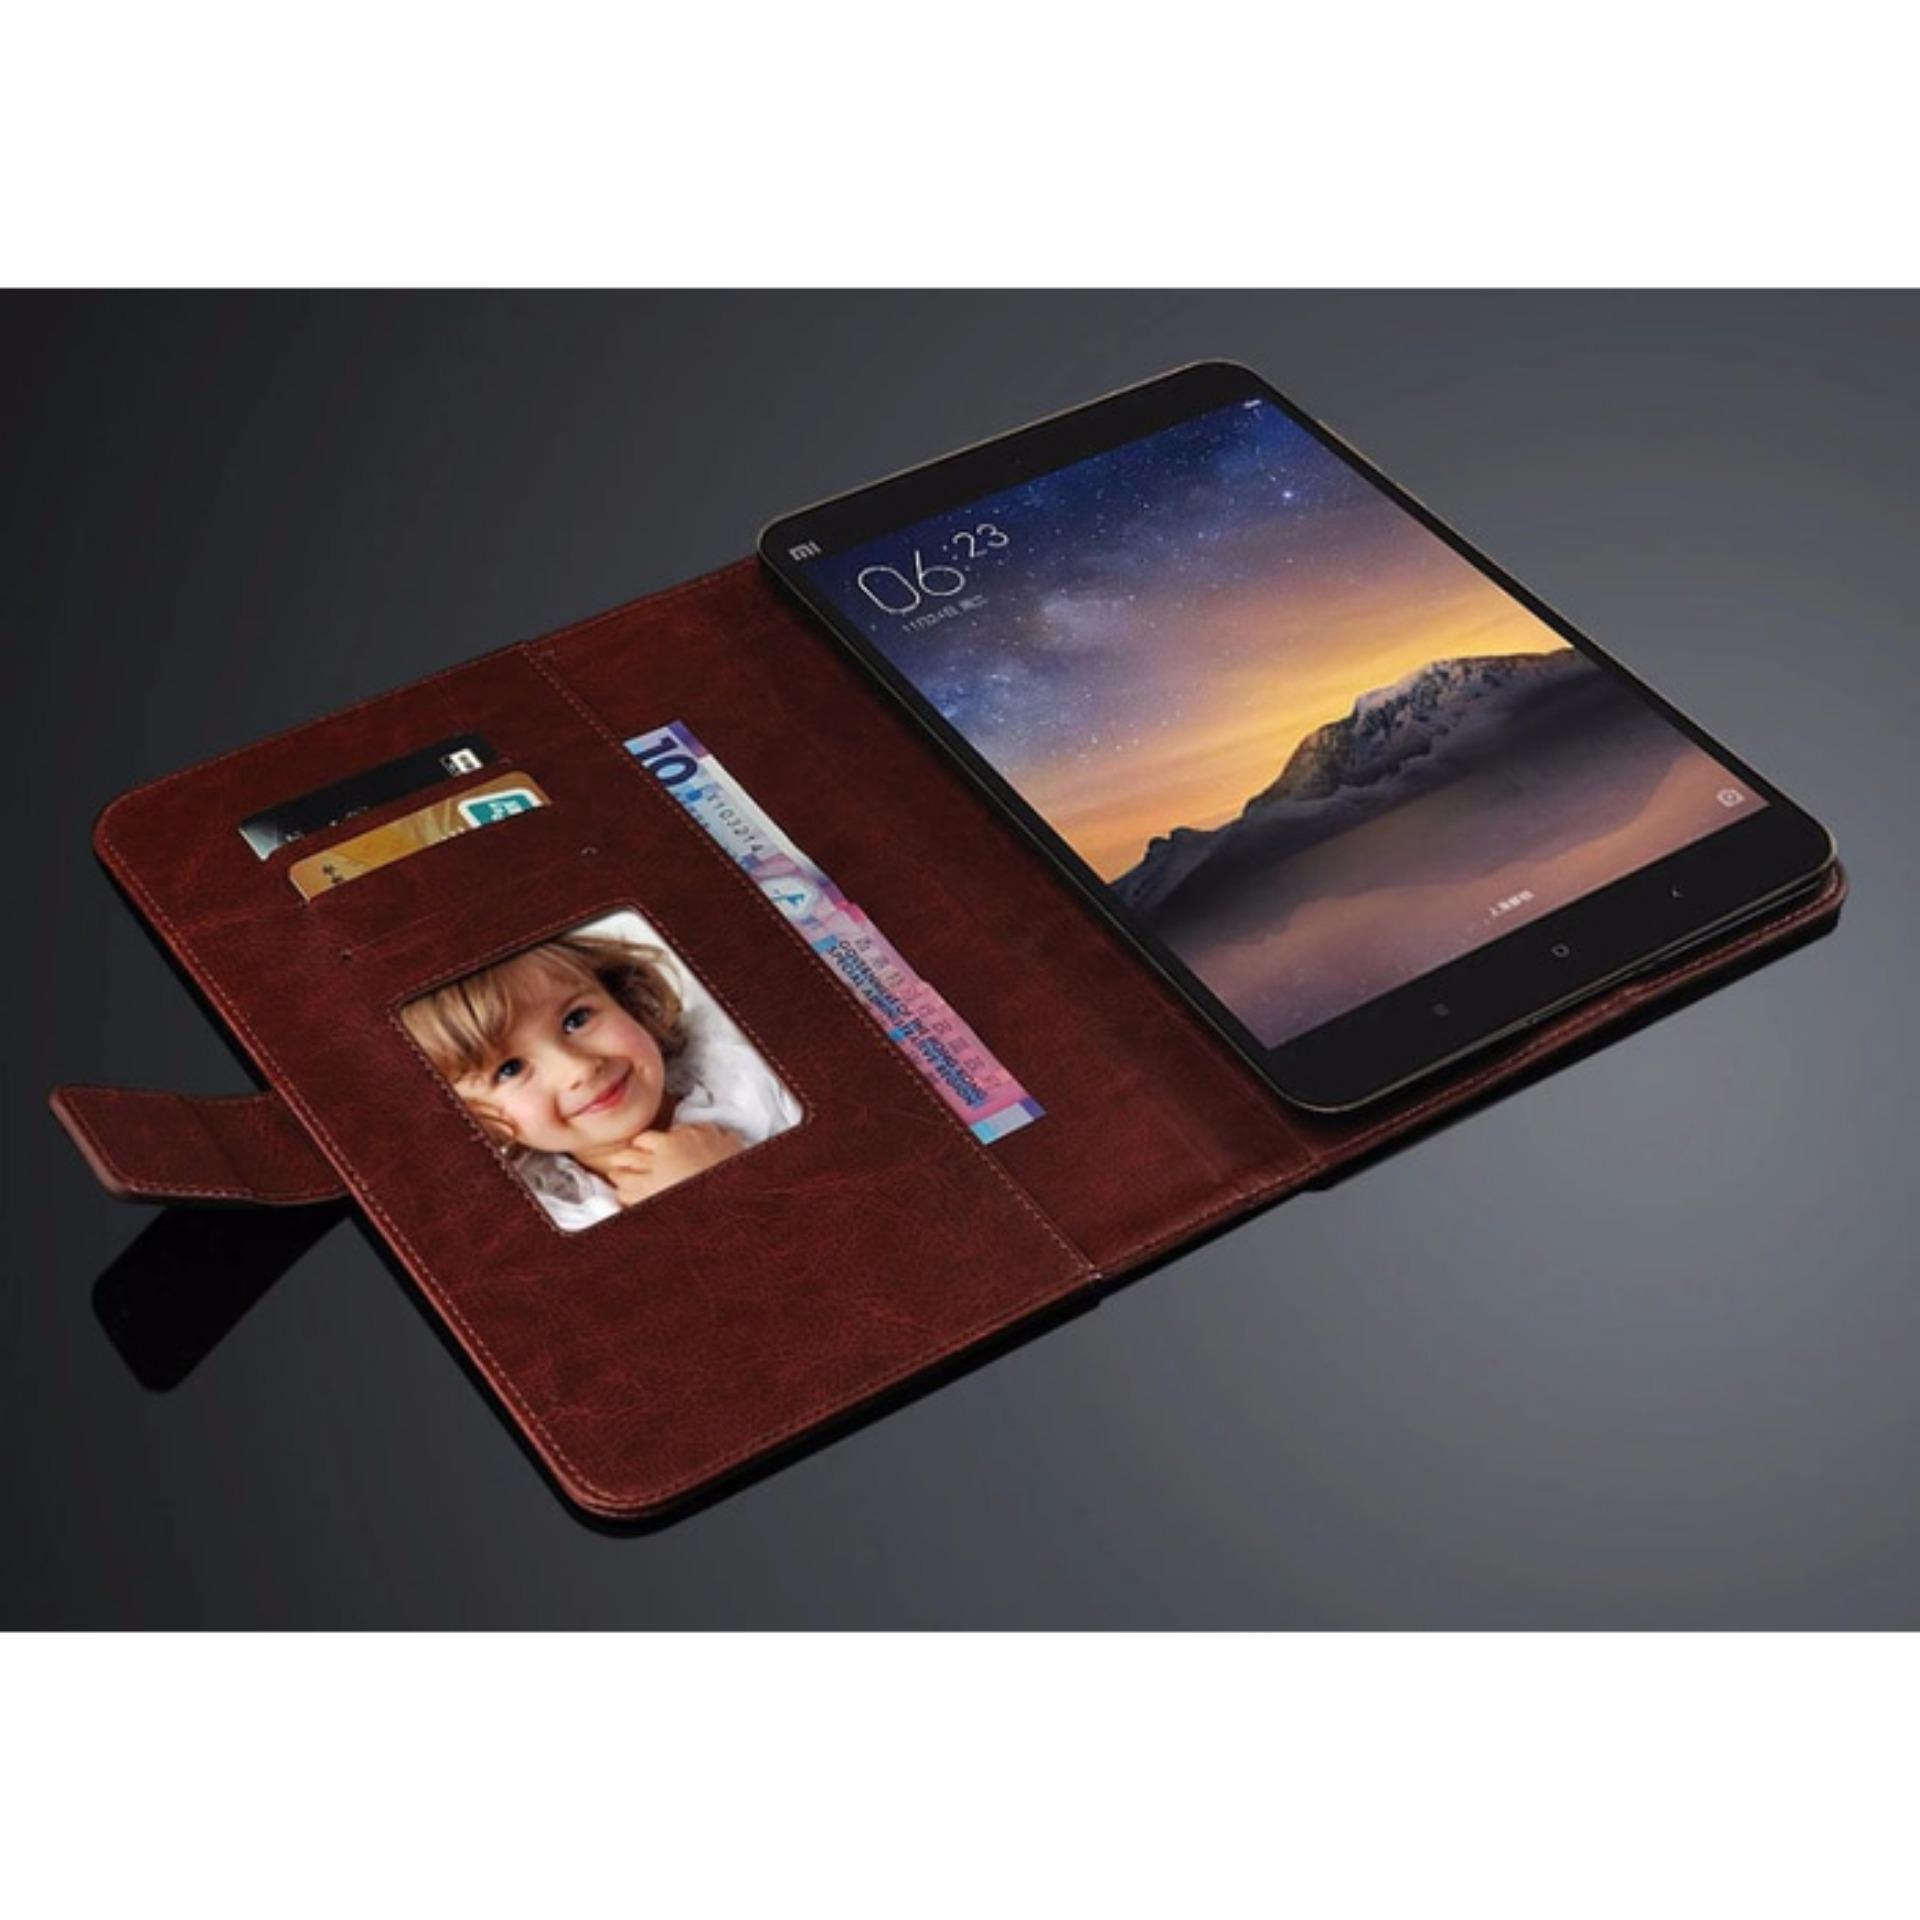 FLIP COVER WALLET Samsung Galaxy Tab A 8.0 Inch T350 T355 P350 P355 SPEN Casing Leather Case Dompet Back Cover Kulit Premium Retro